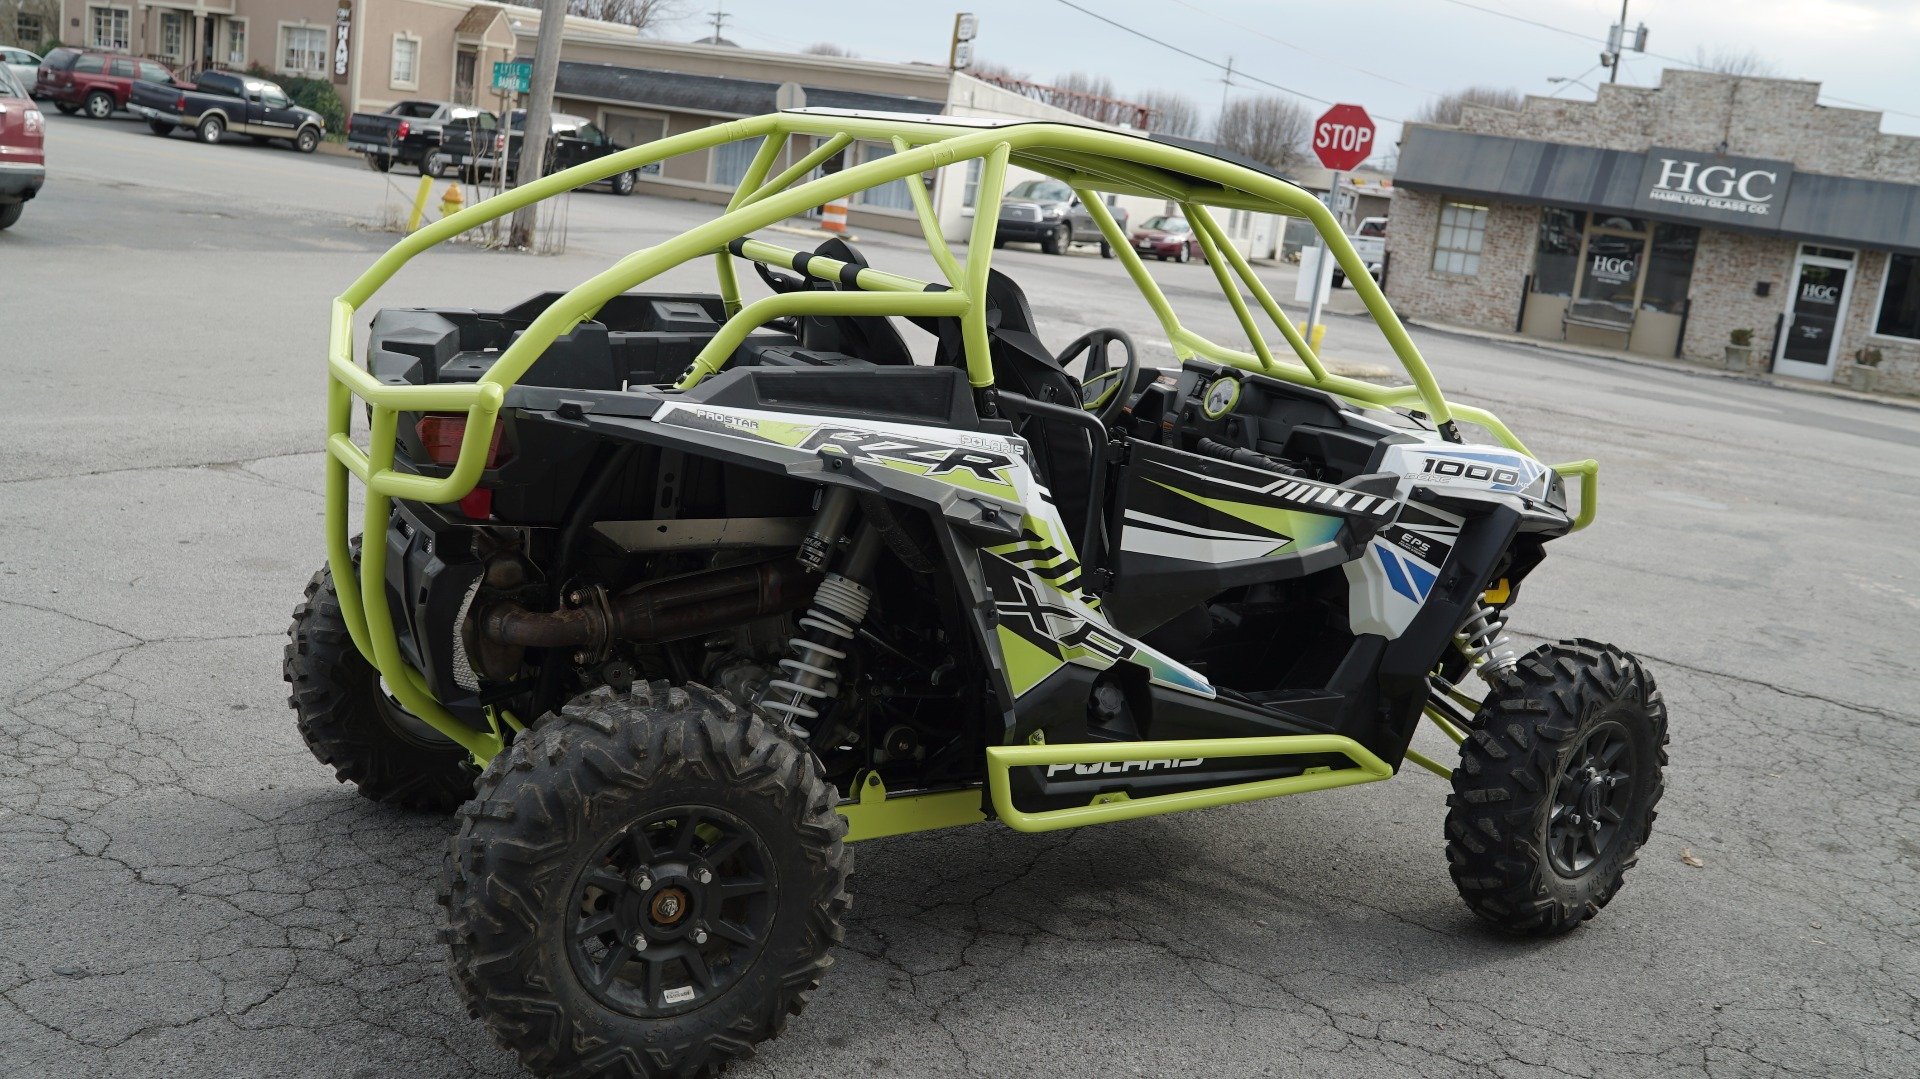 Polaris RZR 1000 with Yellow Roll Cage Image 5